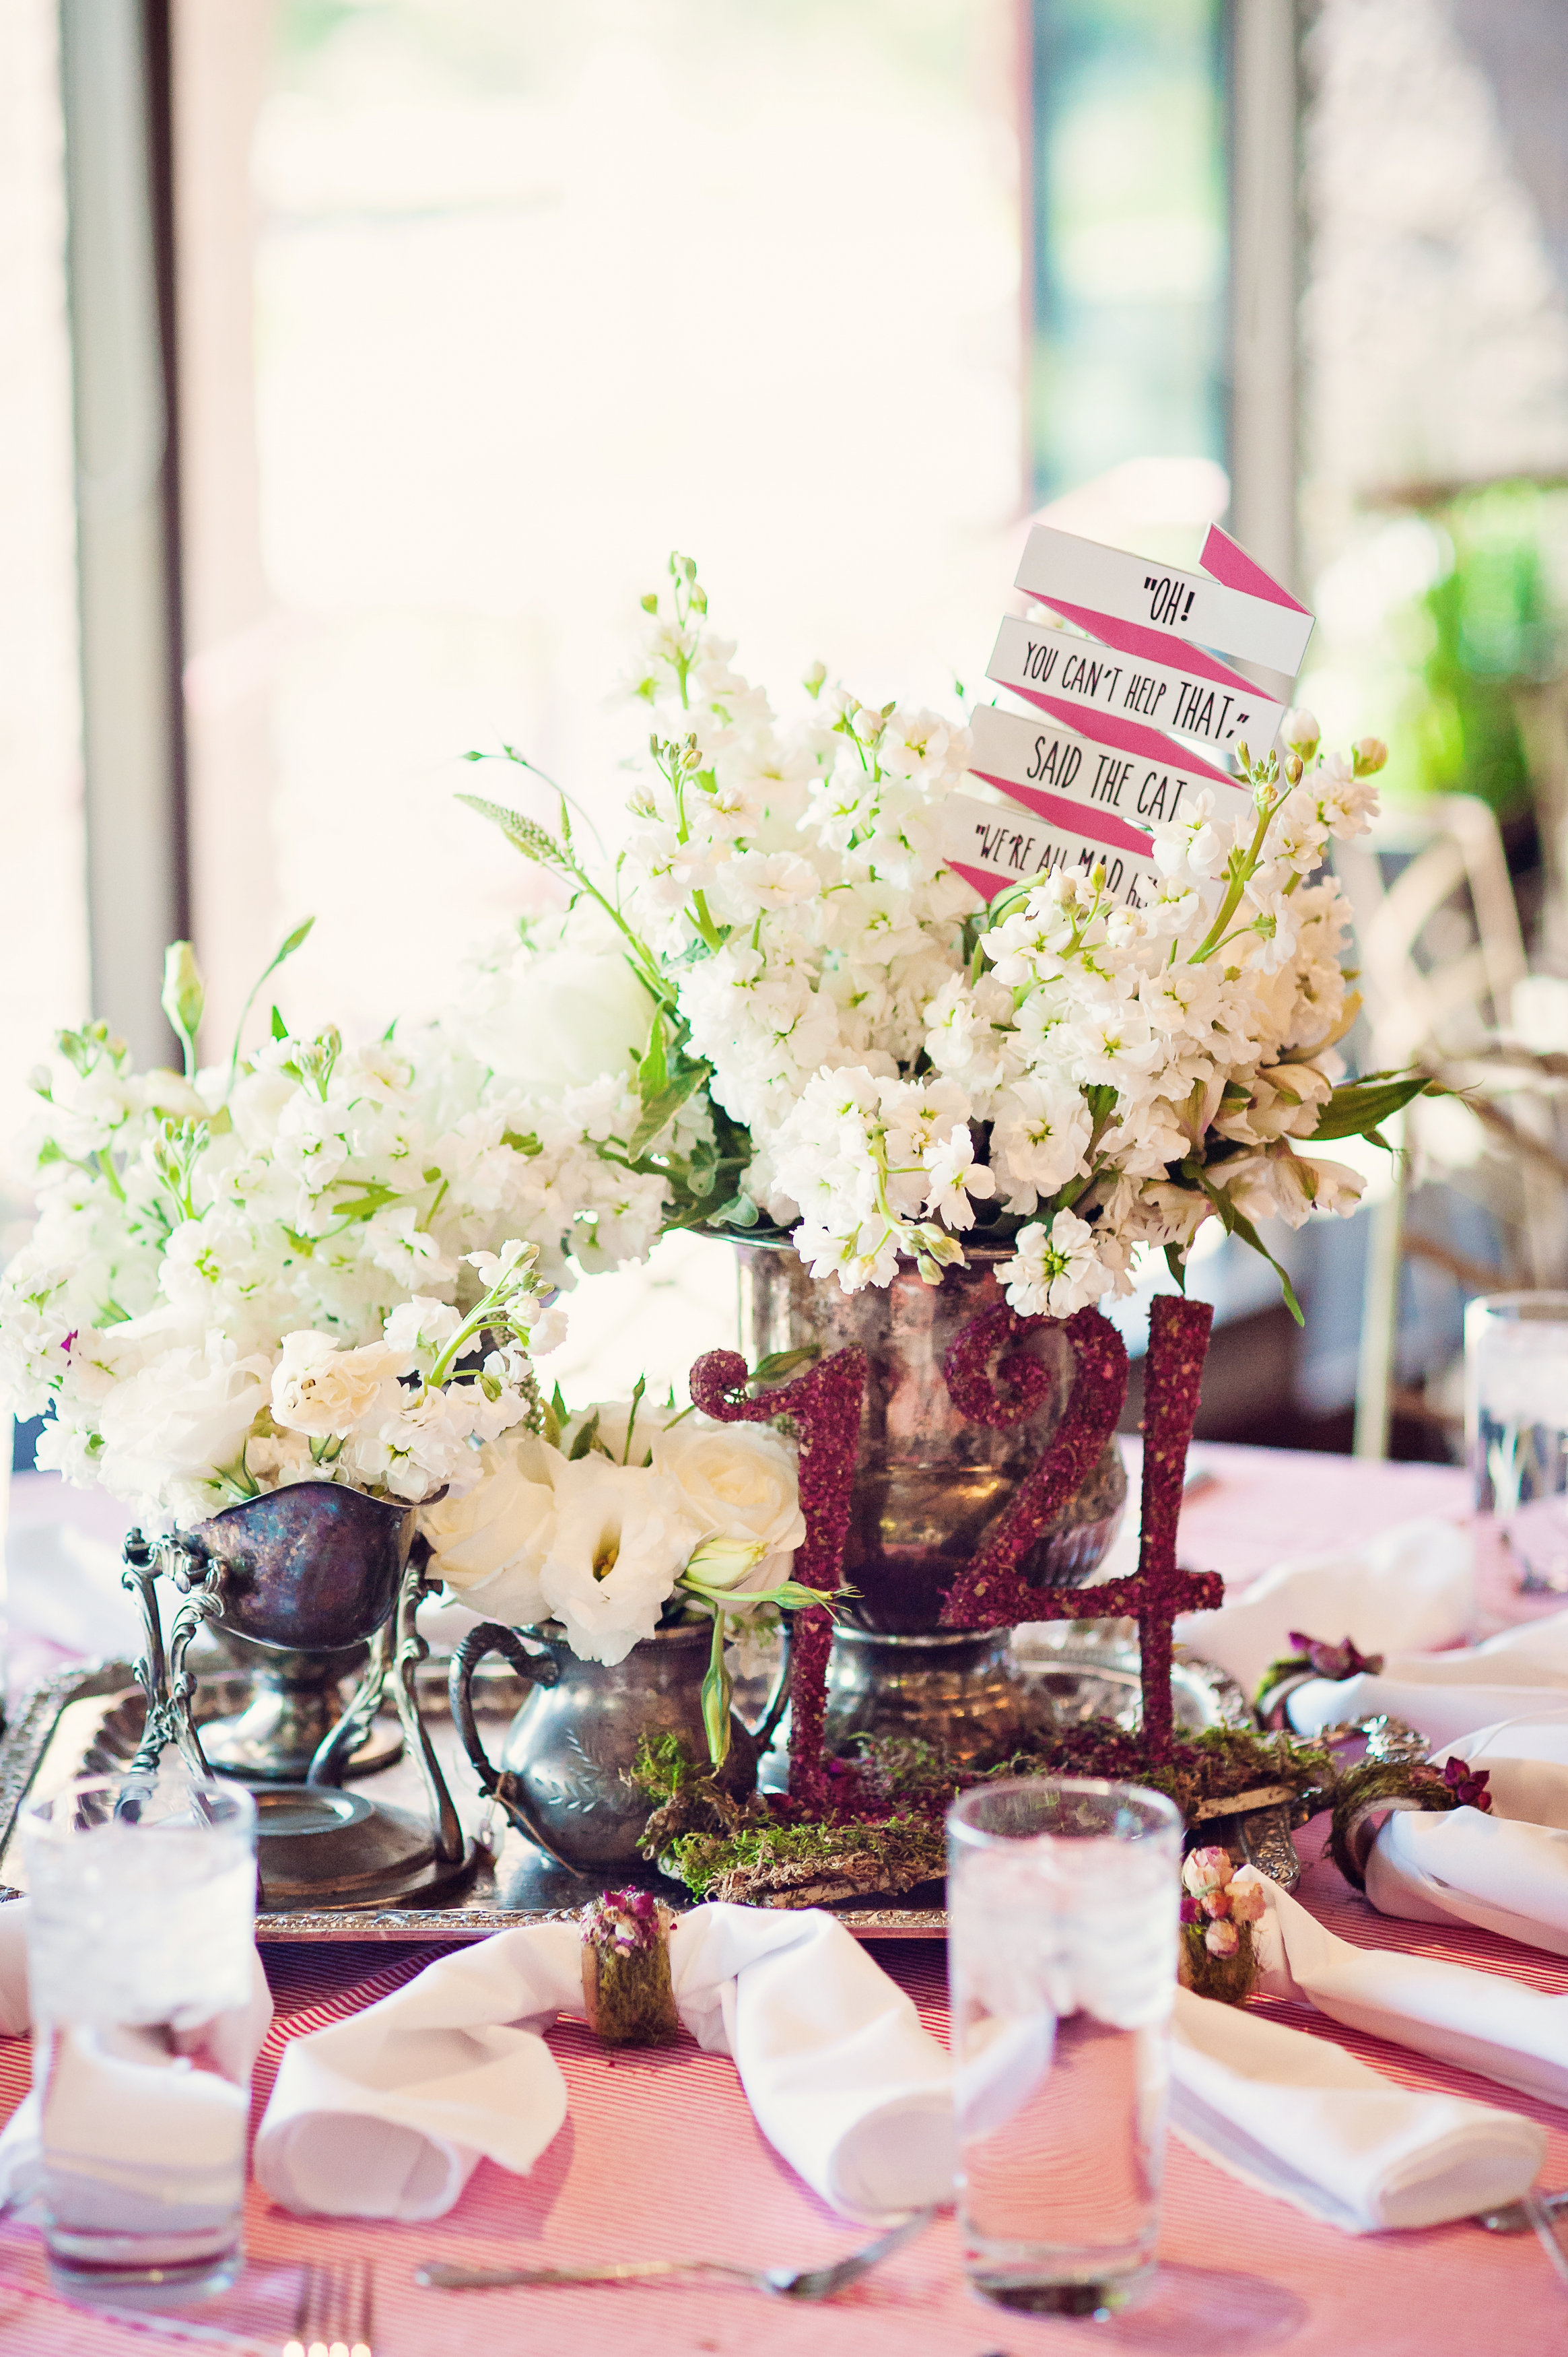 View More: http://weddingsbyscottanddana.pass.us/tea-party-event